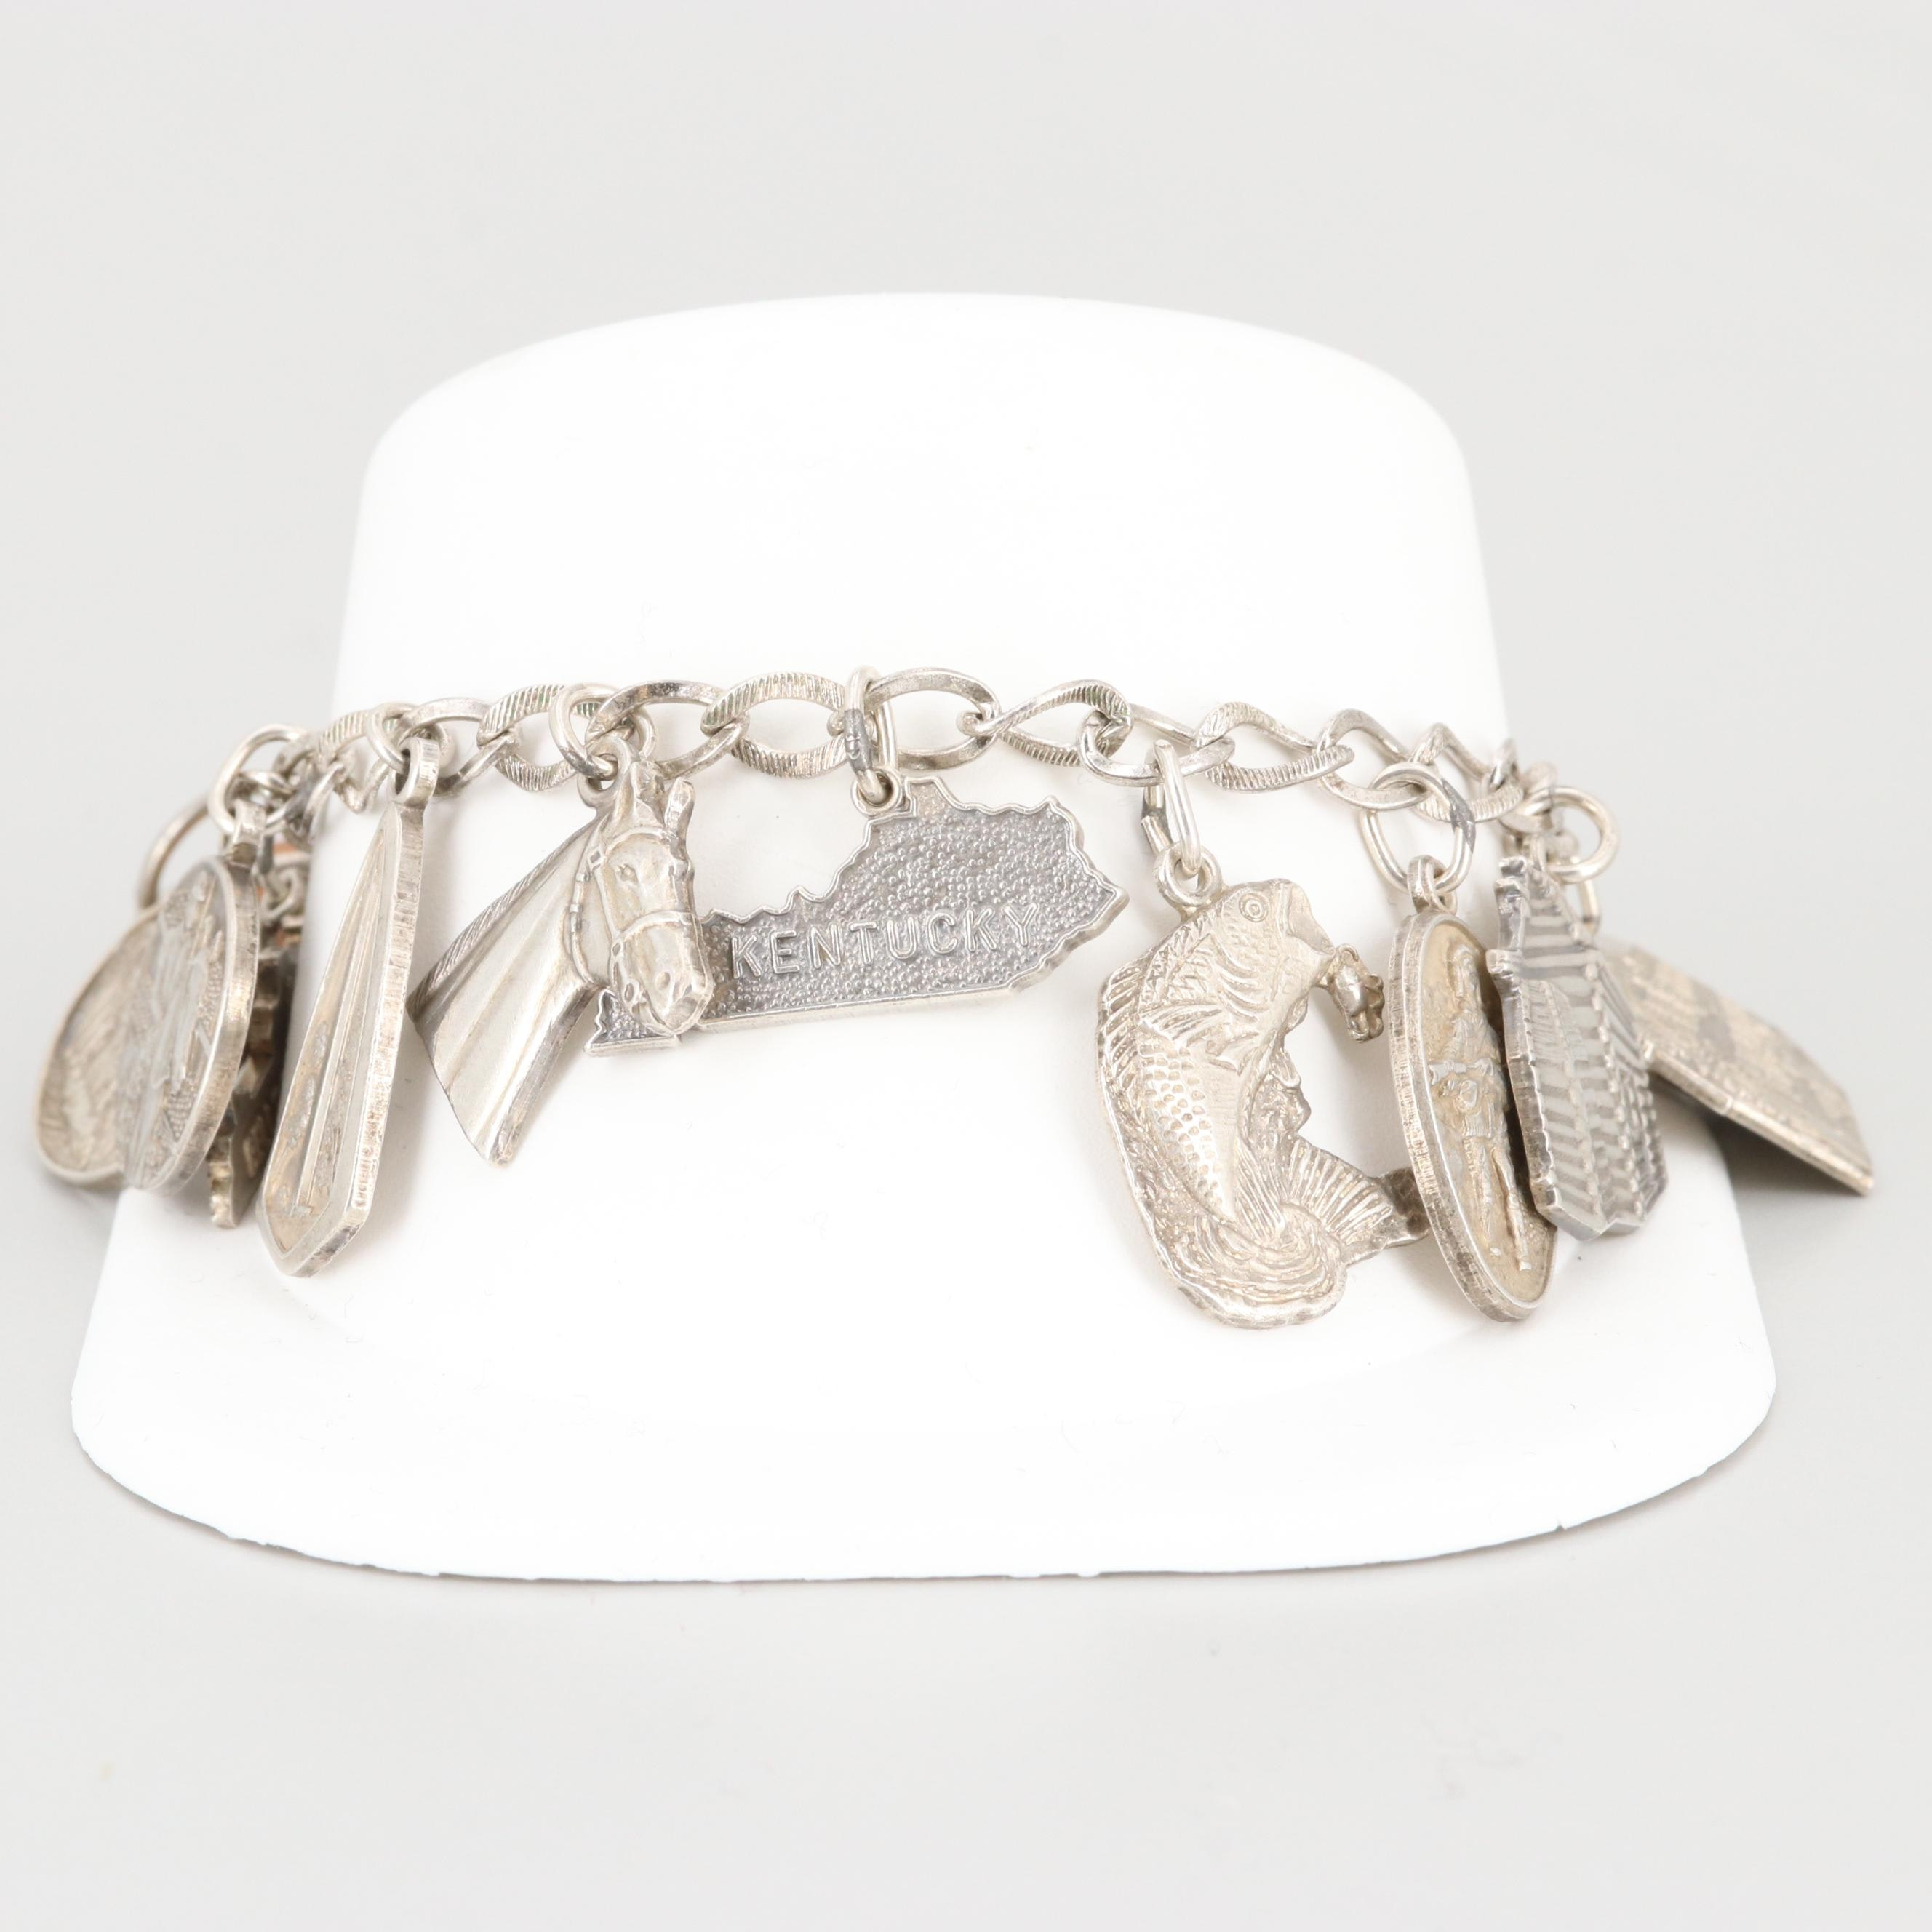 Vintage Sterling Silver Charm Bracelet with Calcite and State Motifs